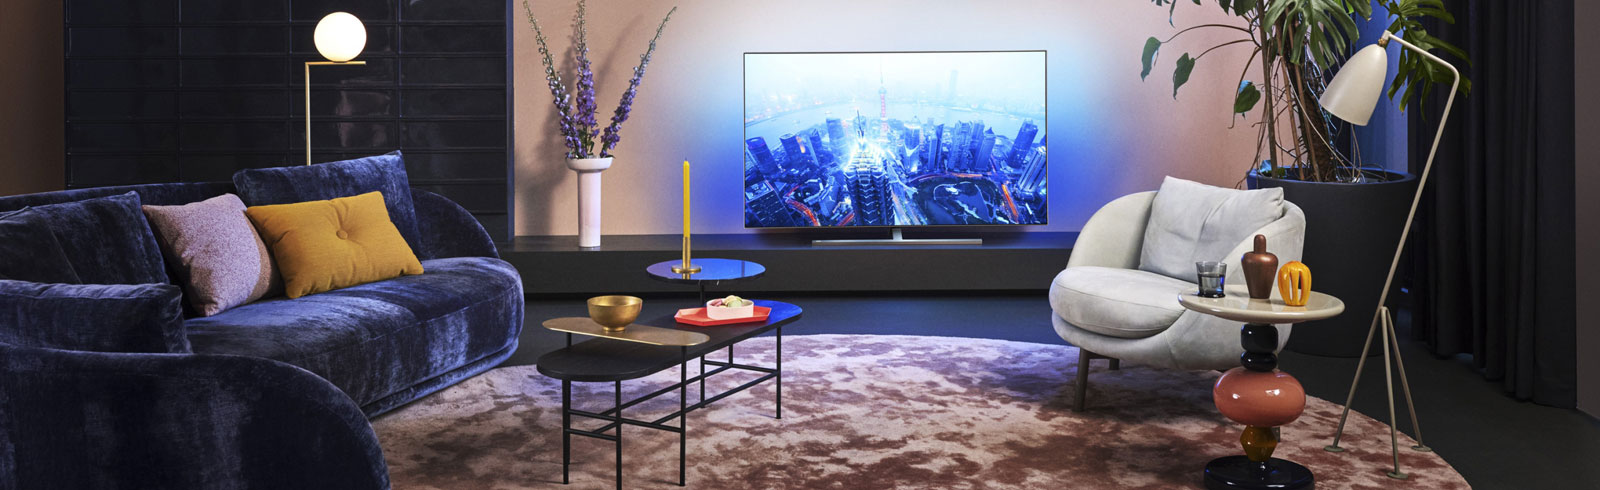 2020 Philips OLED855 TV series is launched, includes Philips 65OLED855 and 55OLED855